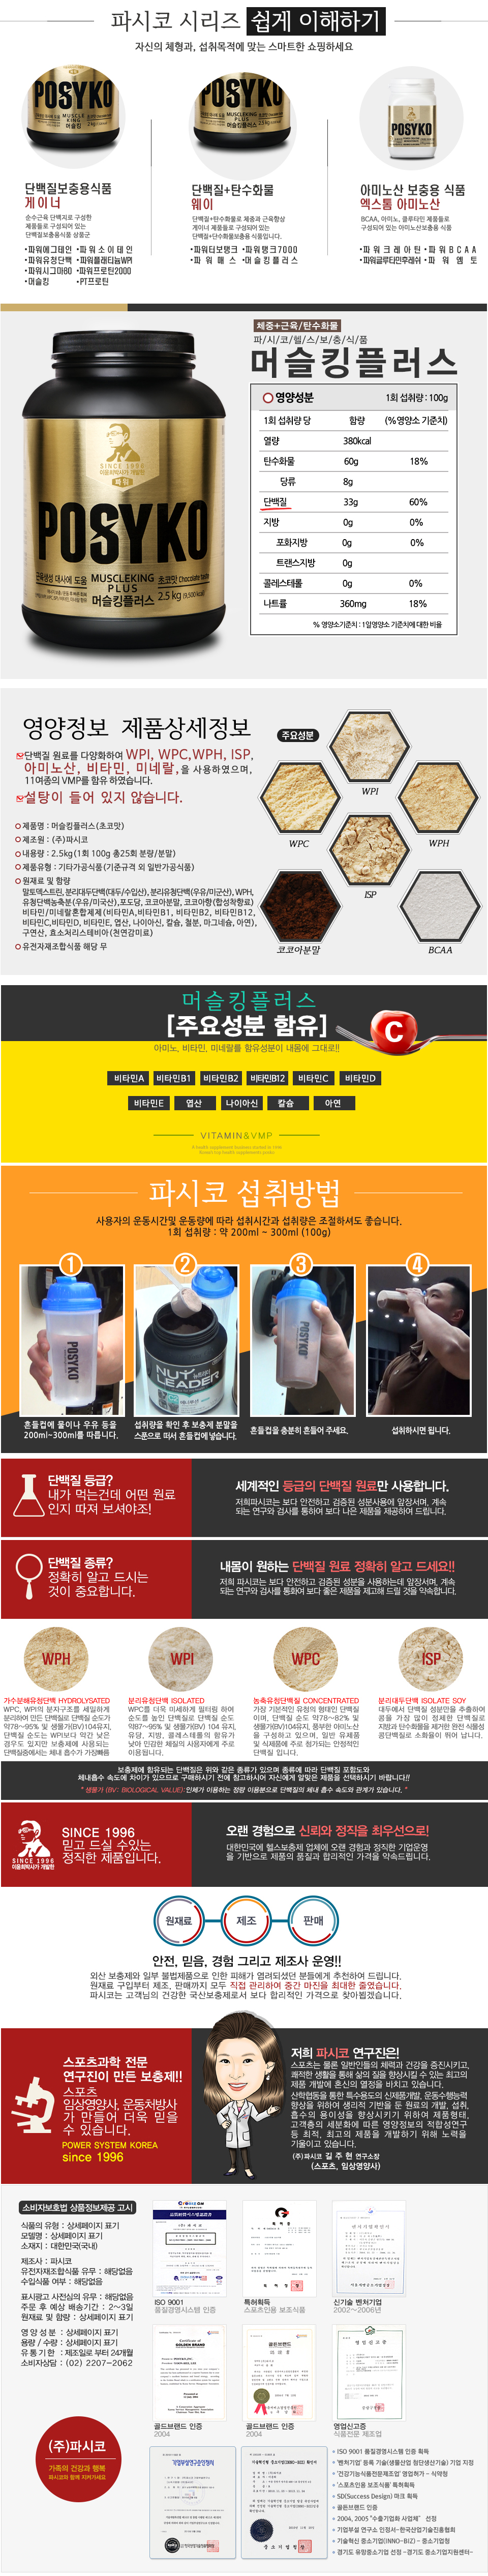 [ etc ] Muscleking Plus Chocolate Flavor 2.5Kg (Weight Training) Protein Supplement/Health Supplement/Shaker Included